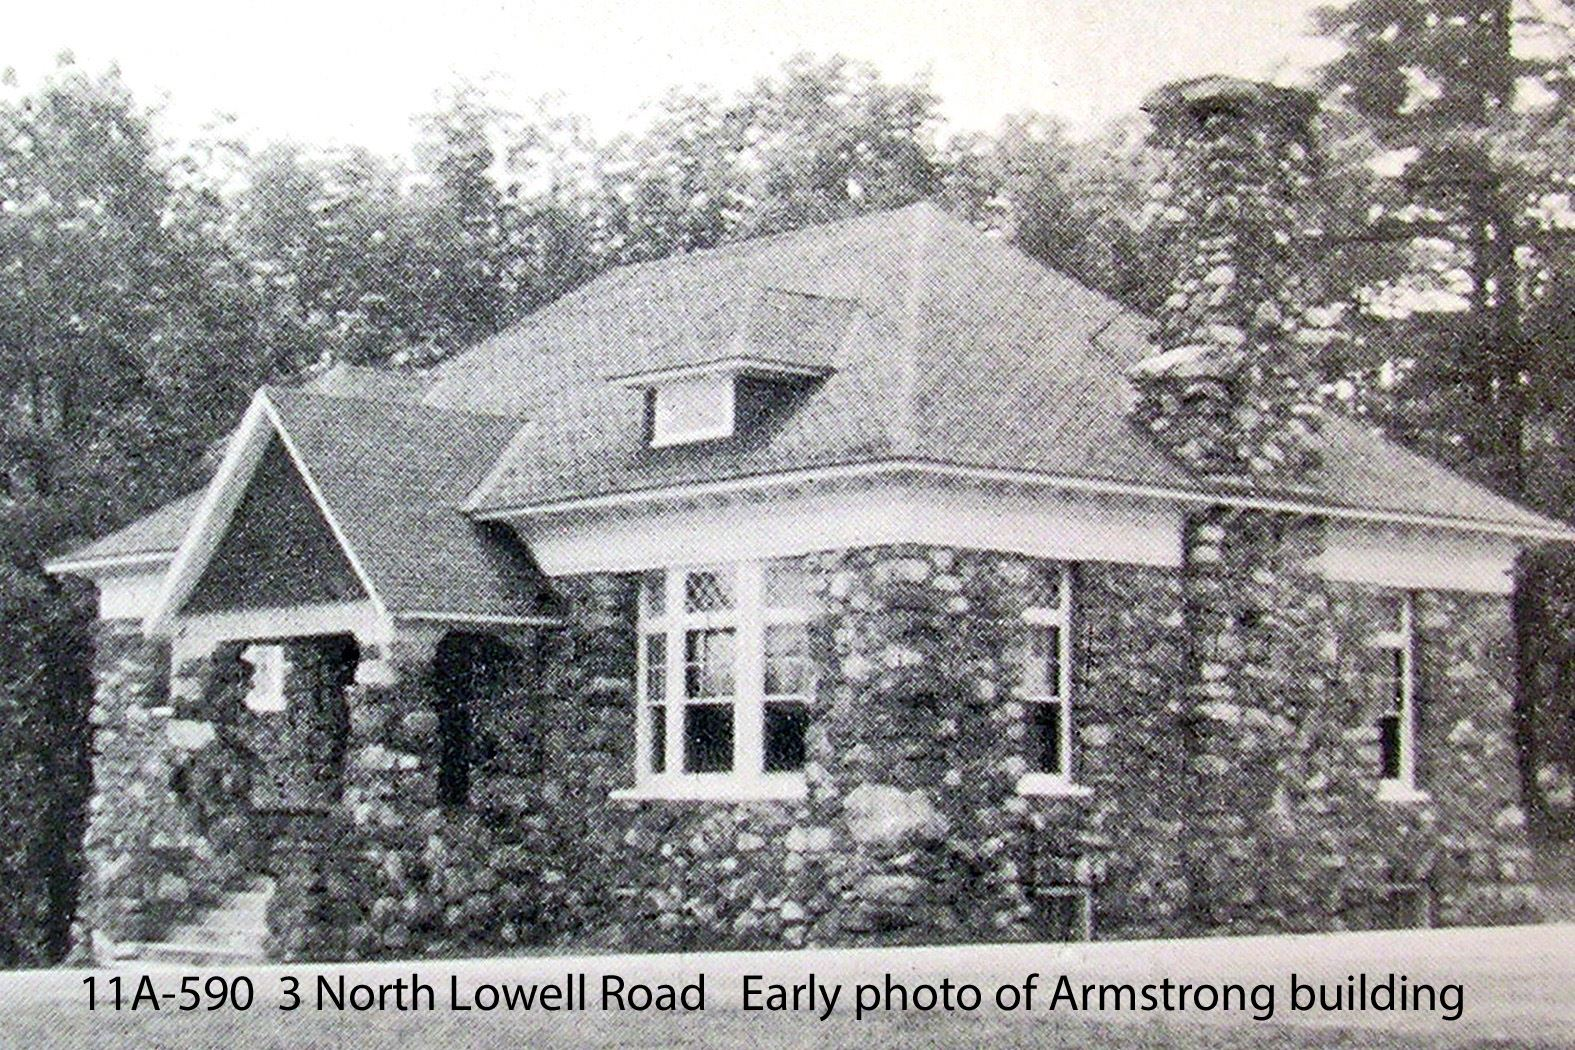 11A-590  3 North Lowell Road  Old view of Armstrong Memorial Building